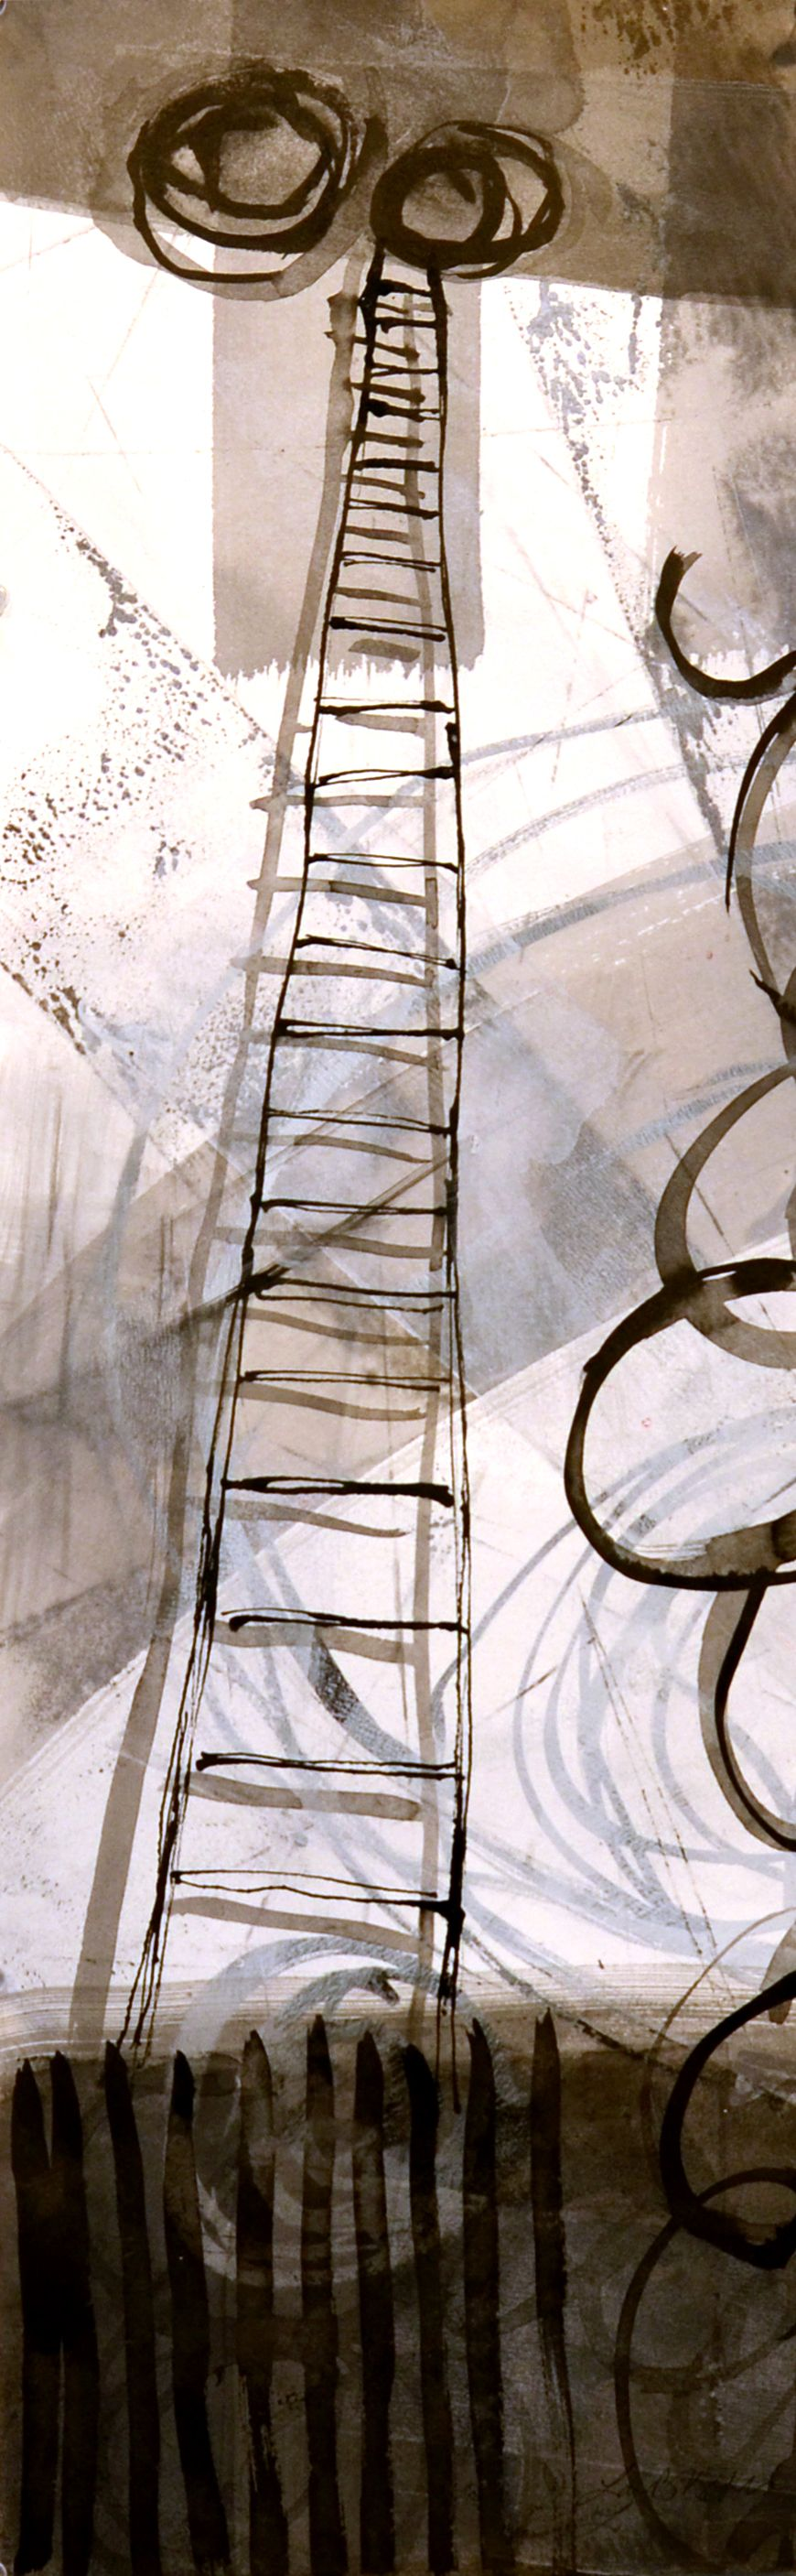 Ladder Page •    mixed media on paper    •    10 x 30